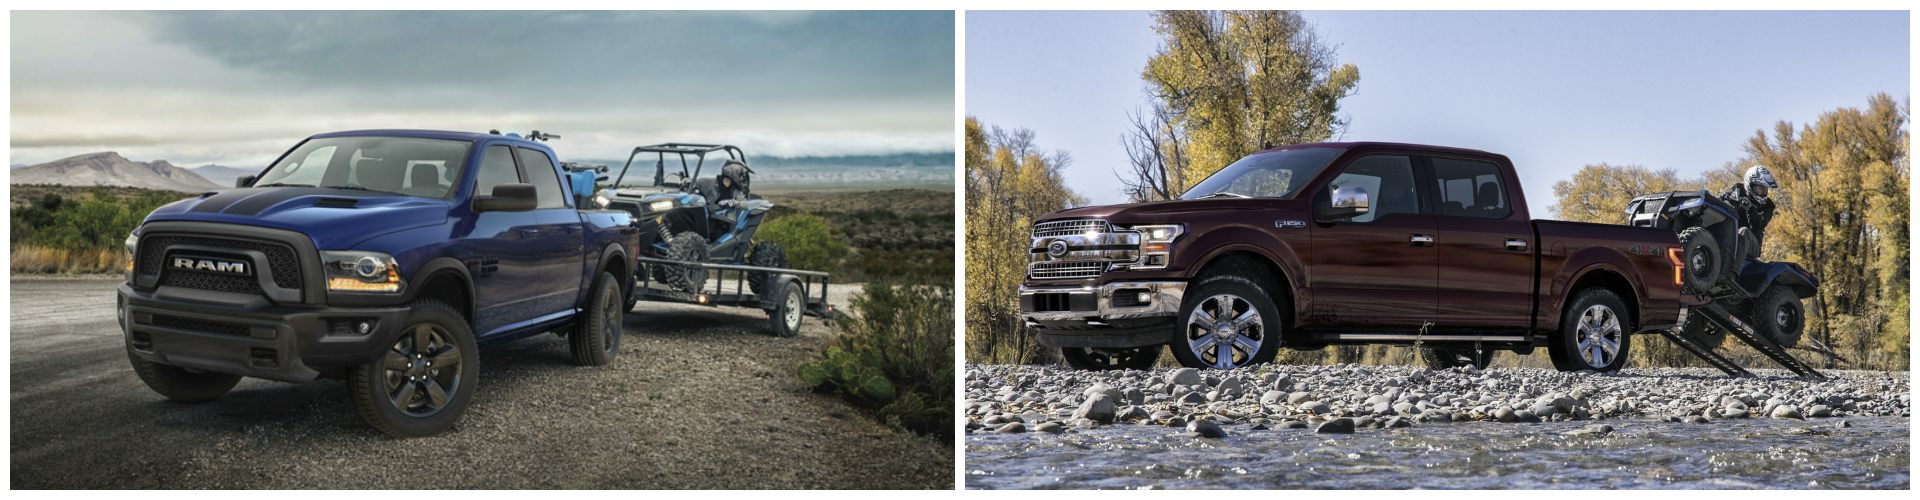 2020 RAM 1500 vs 2020 Ford F-150 Towing